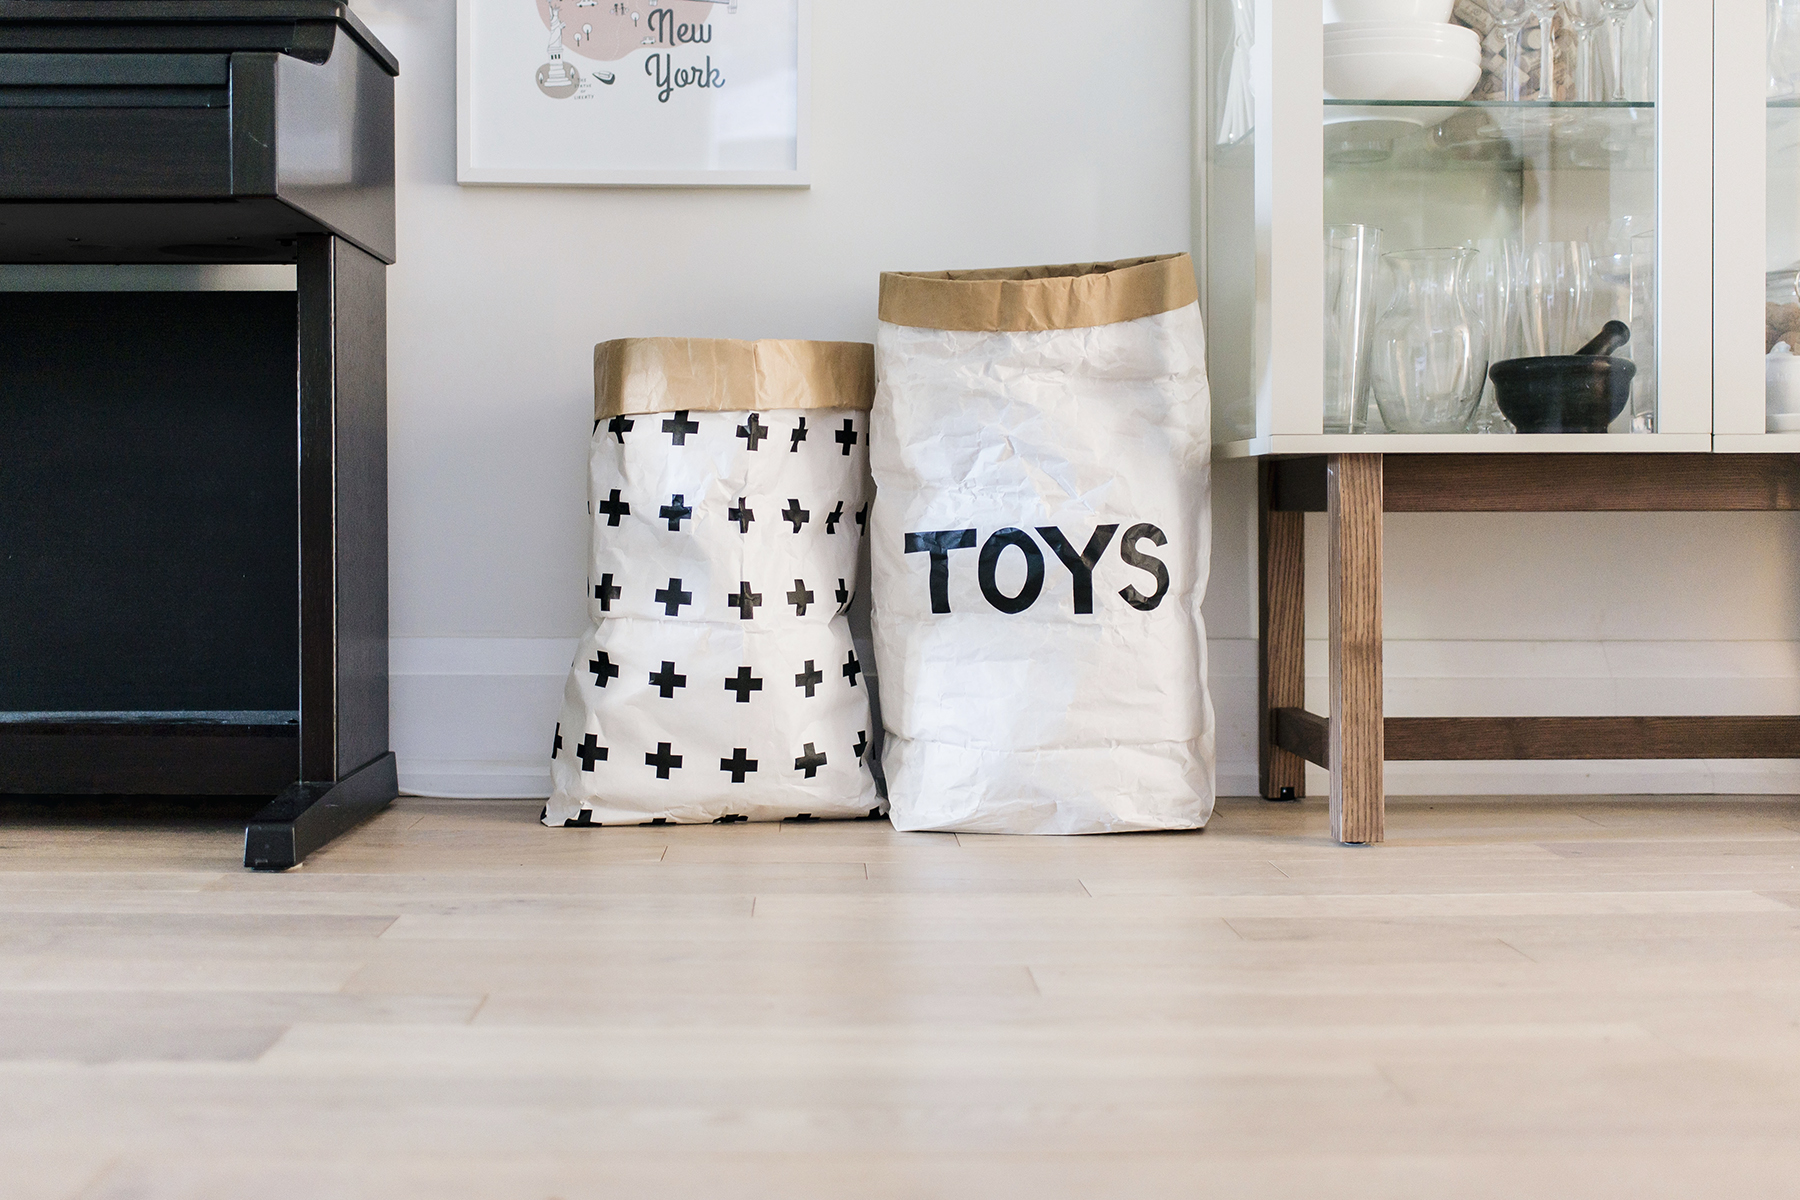 Modern Scandinavian toy storage - Tellkiddo, Grida Studio on Etsy | Happy Grey Lucky